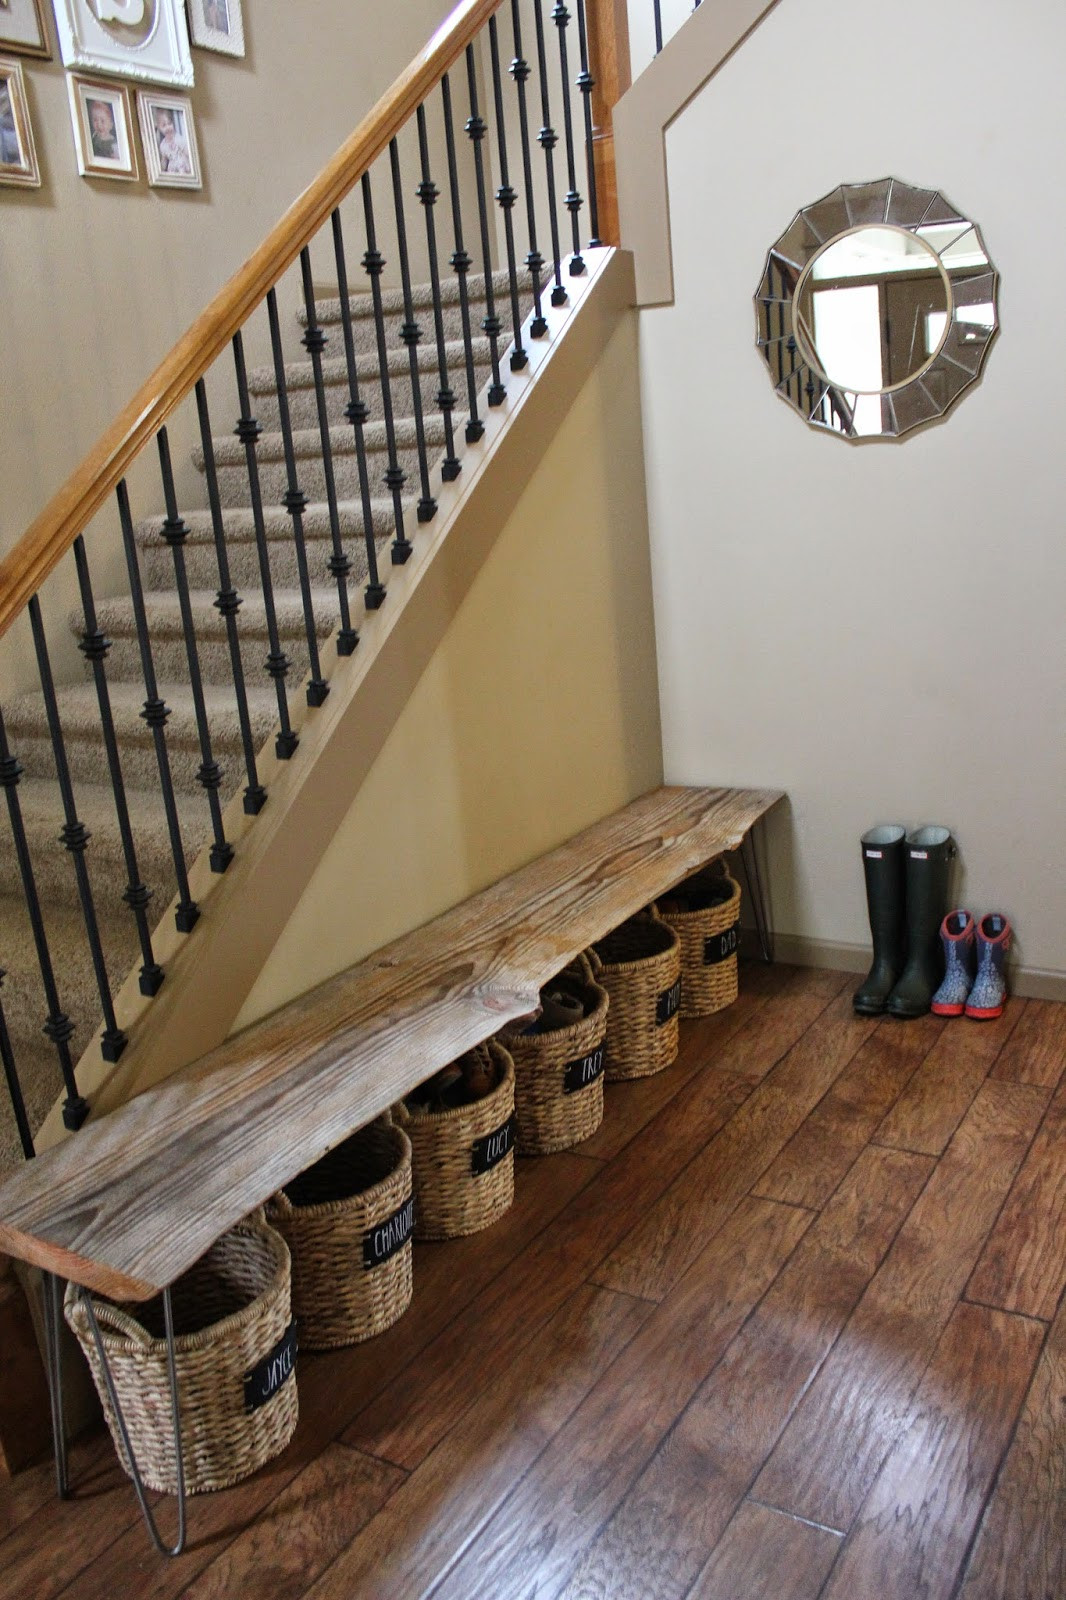 DIY Shoe Organizer Ideas  Trey and Lucy A Bench & Shoe Storage DIY